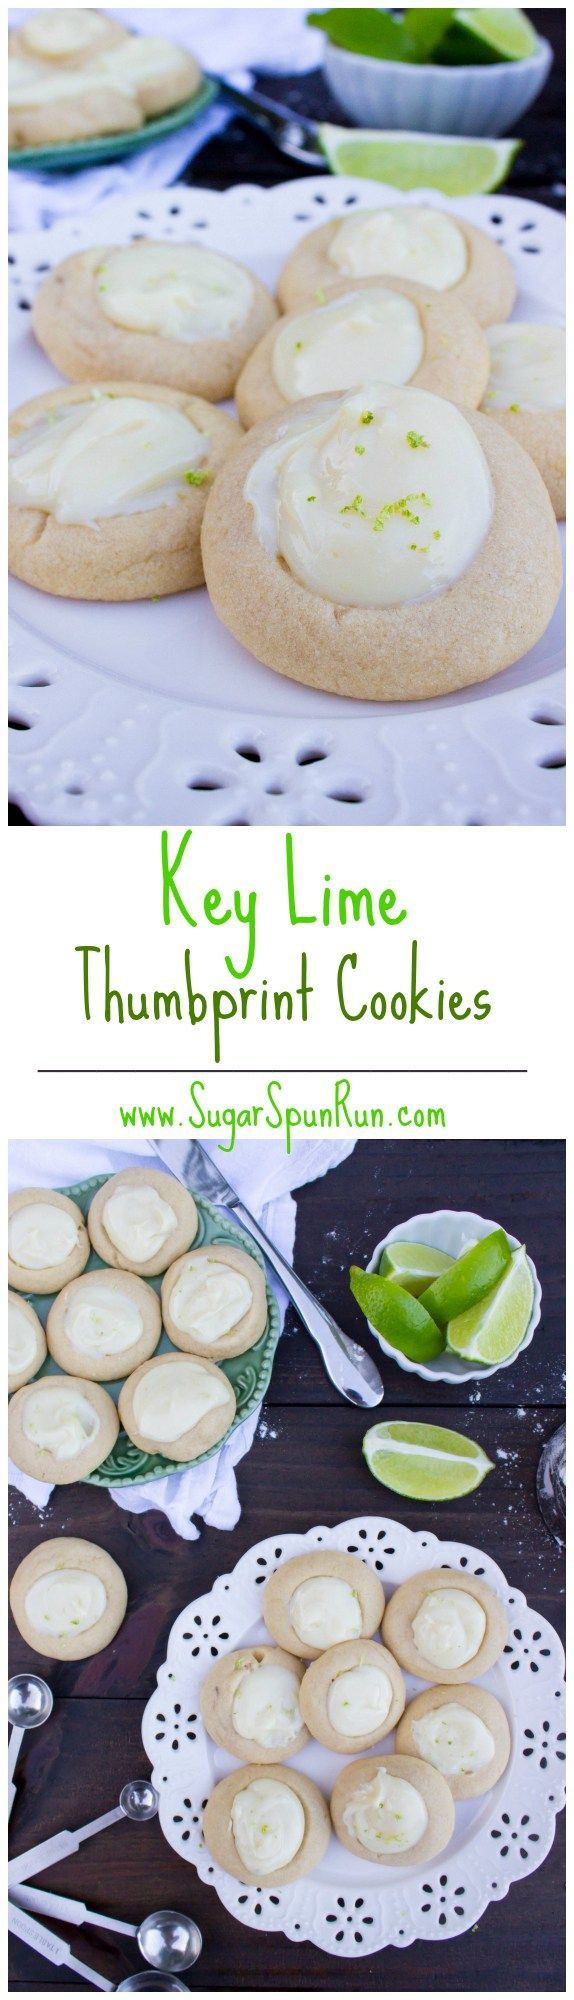 Key Lime Thumbprint Cookies | Recipe | Thumbprint Cookies, Key Lime ...